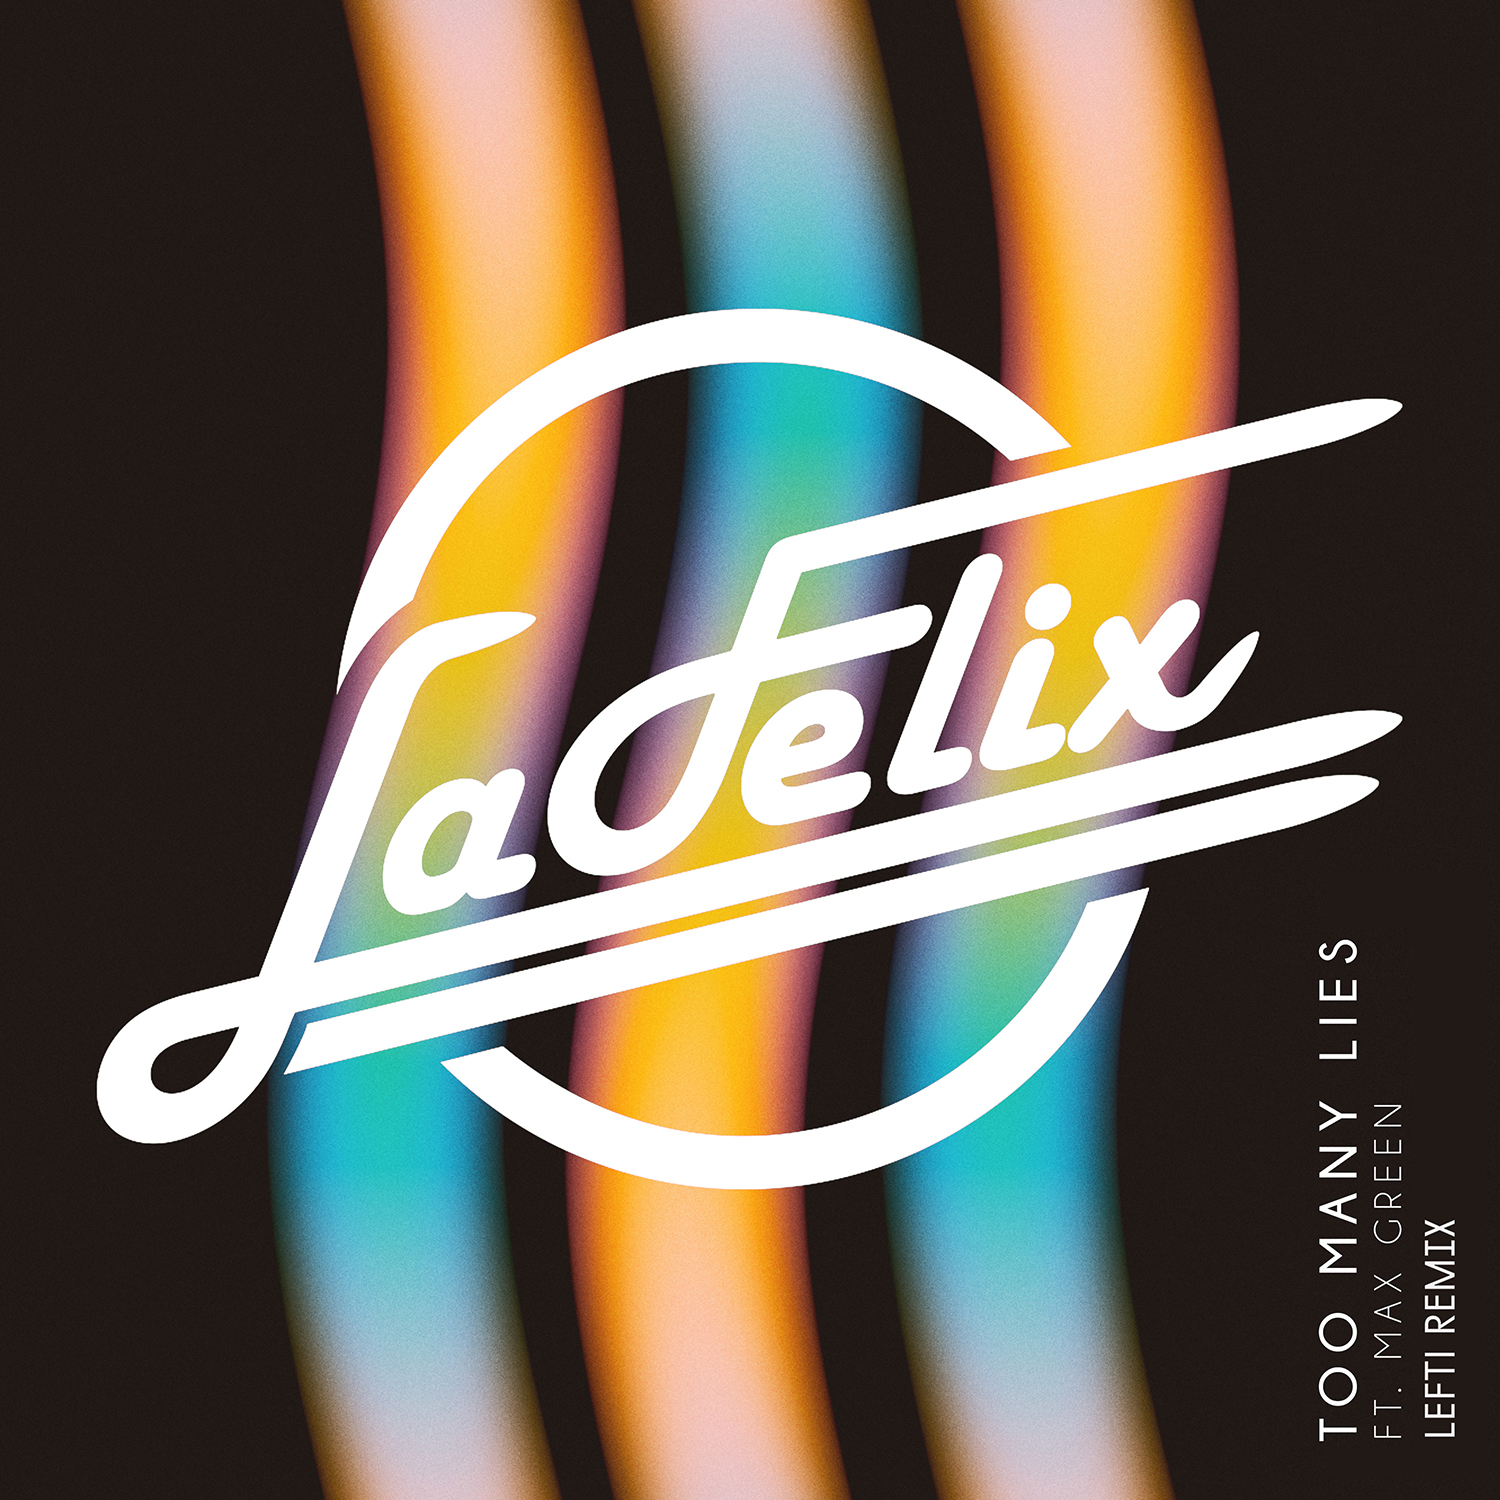 TooManyLies_lefti-remix-artwork.jpg